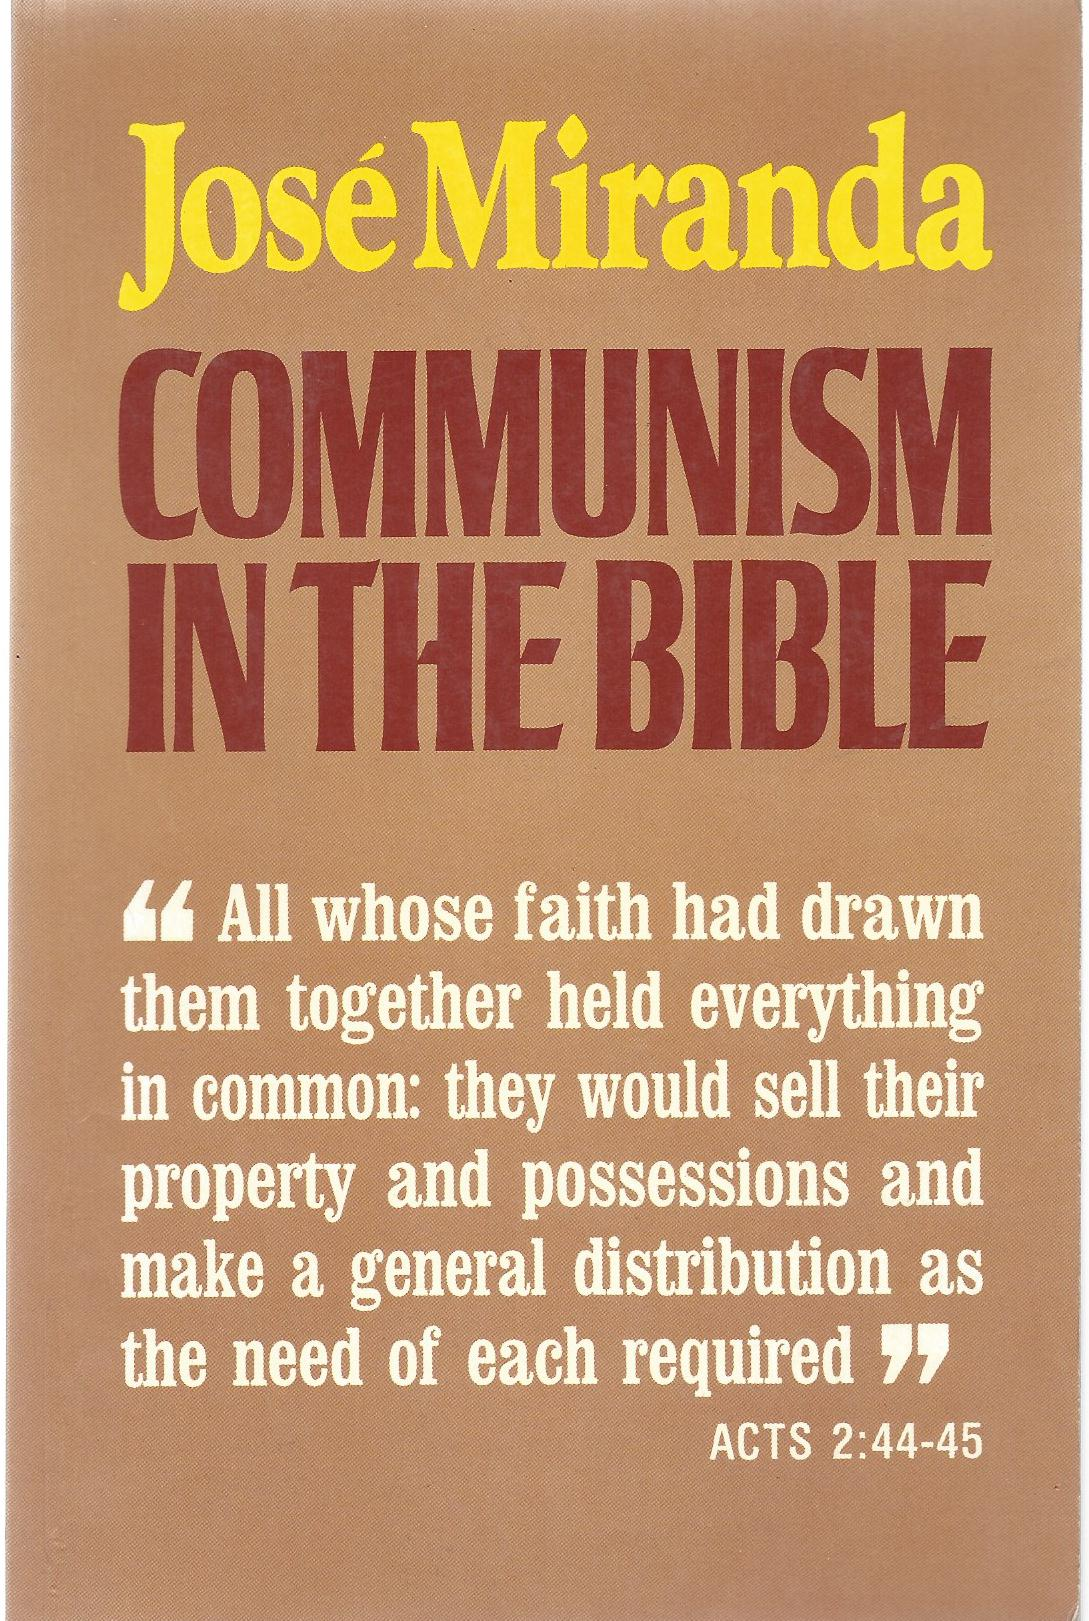 communism-in-the-bible-cuarta-edici%c2%a2n-1989-orbis-books